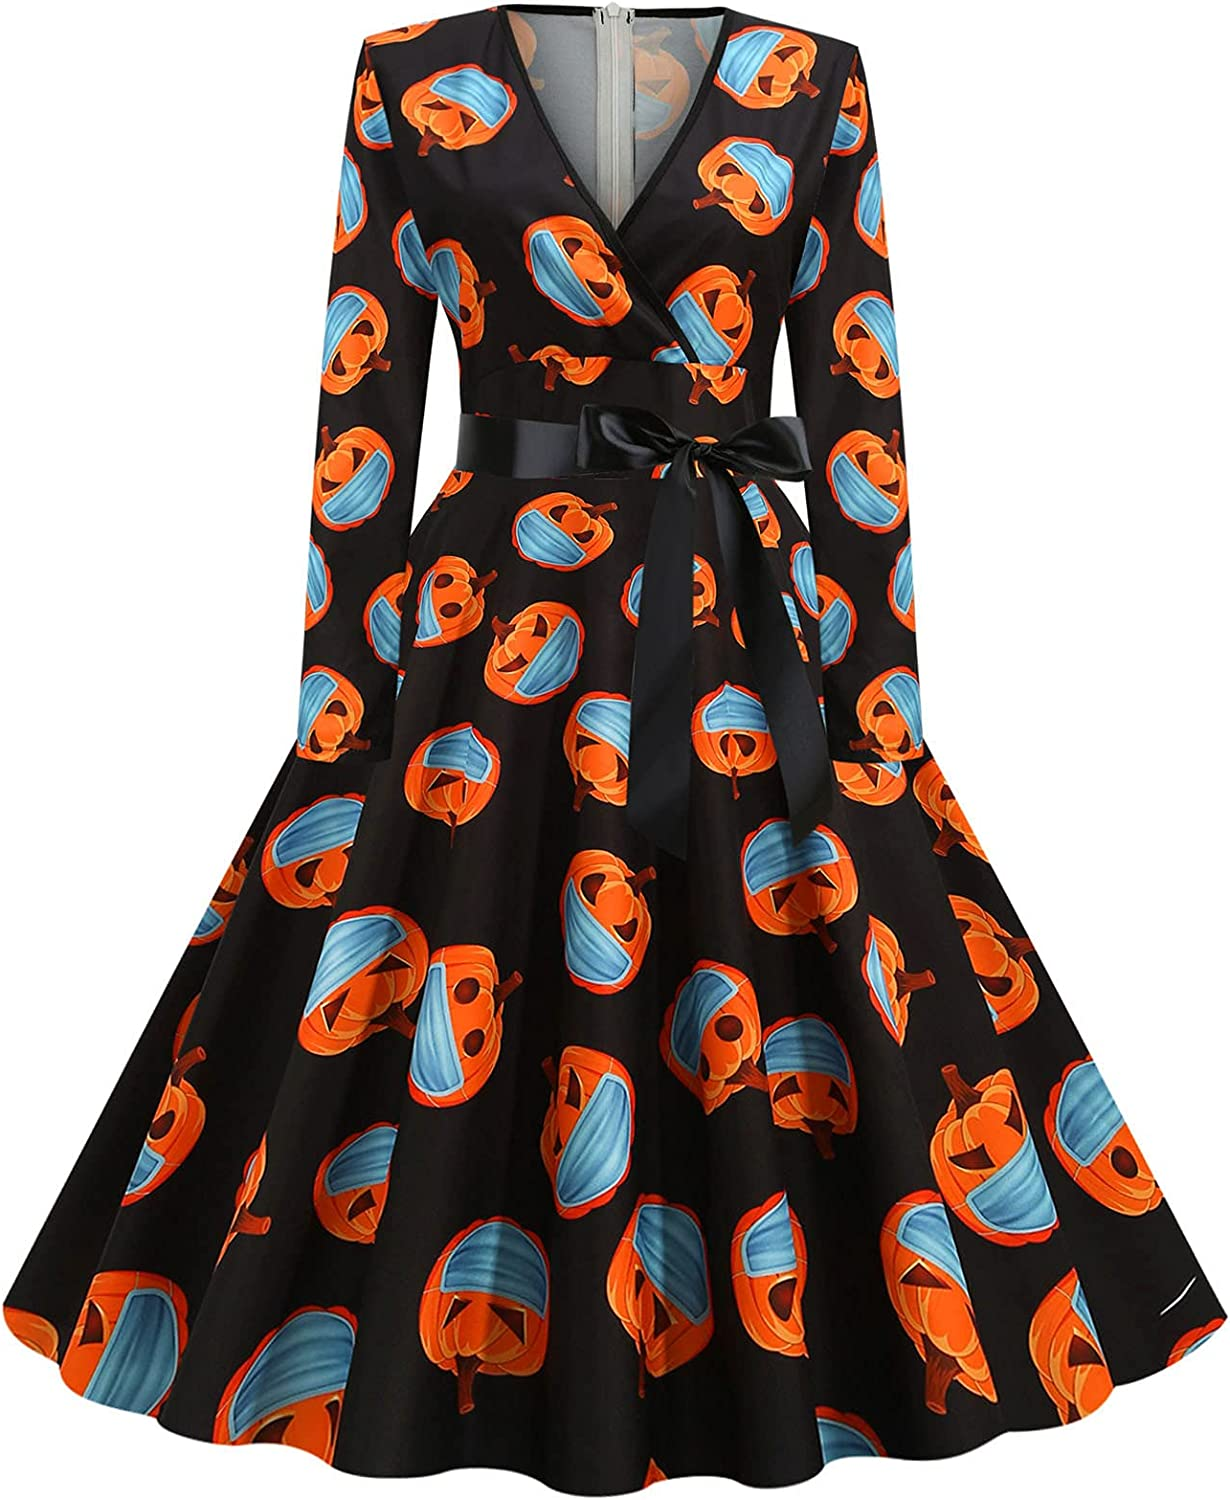 Summer Dress for Women Vintage Long Sleeve Halloween 1950s Housewife Evening Party Prom Cocktail Beach Casual Dress